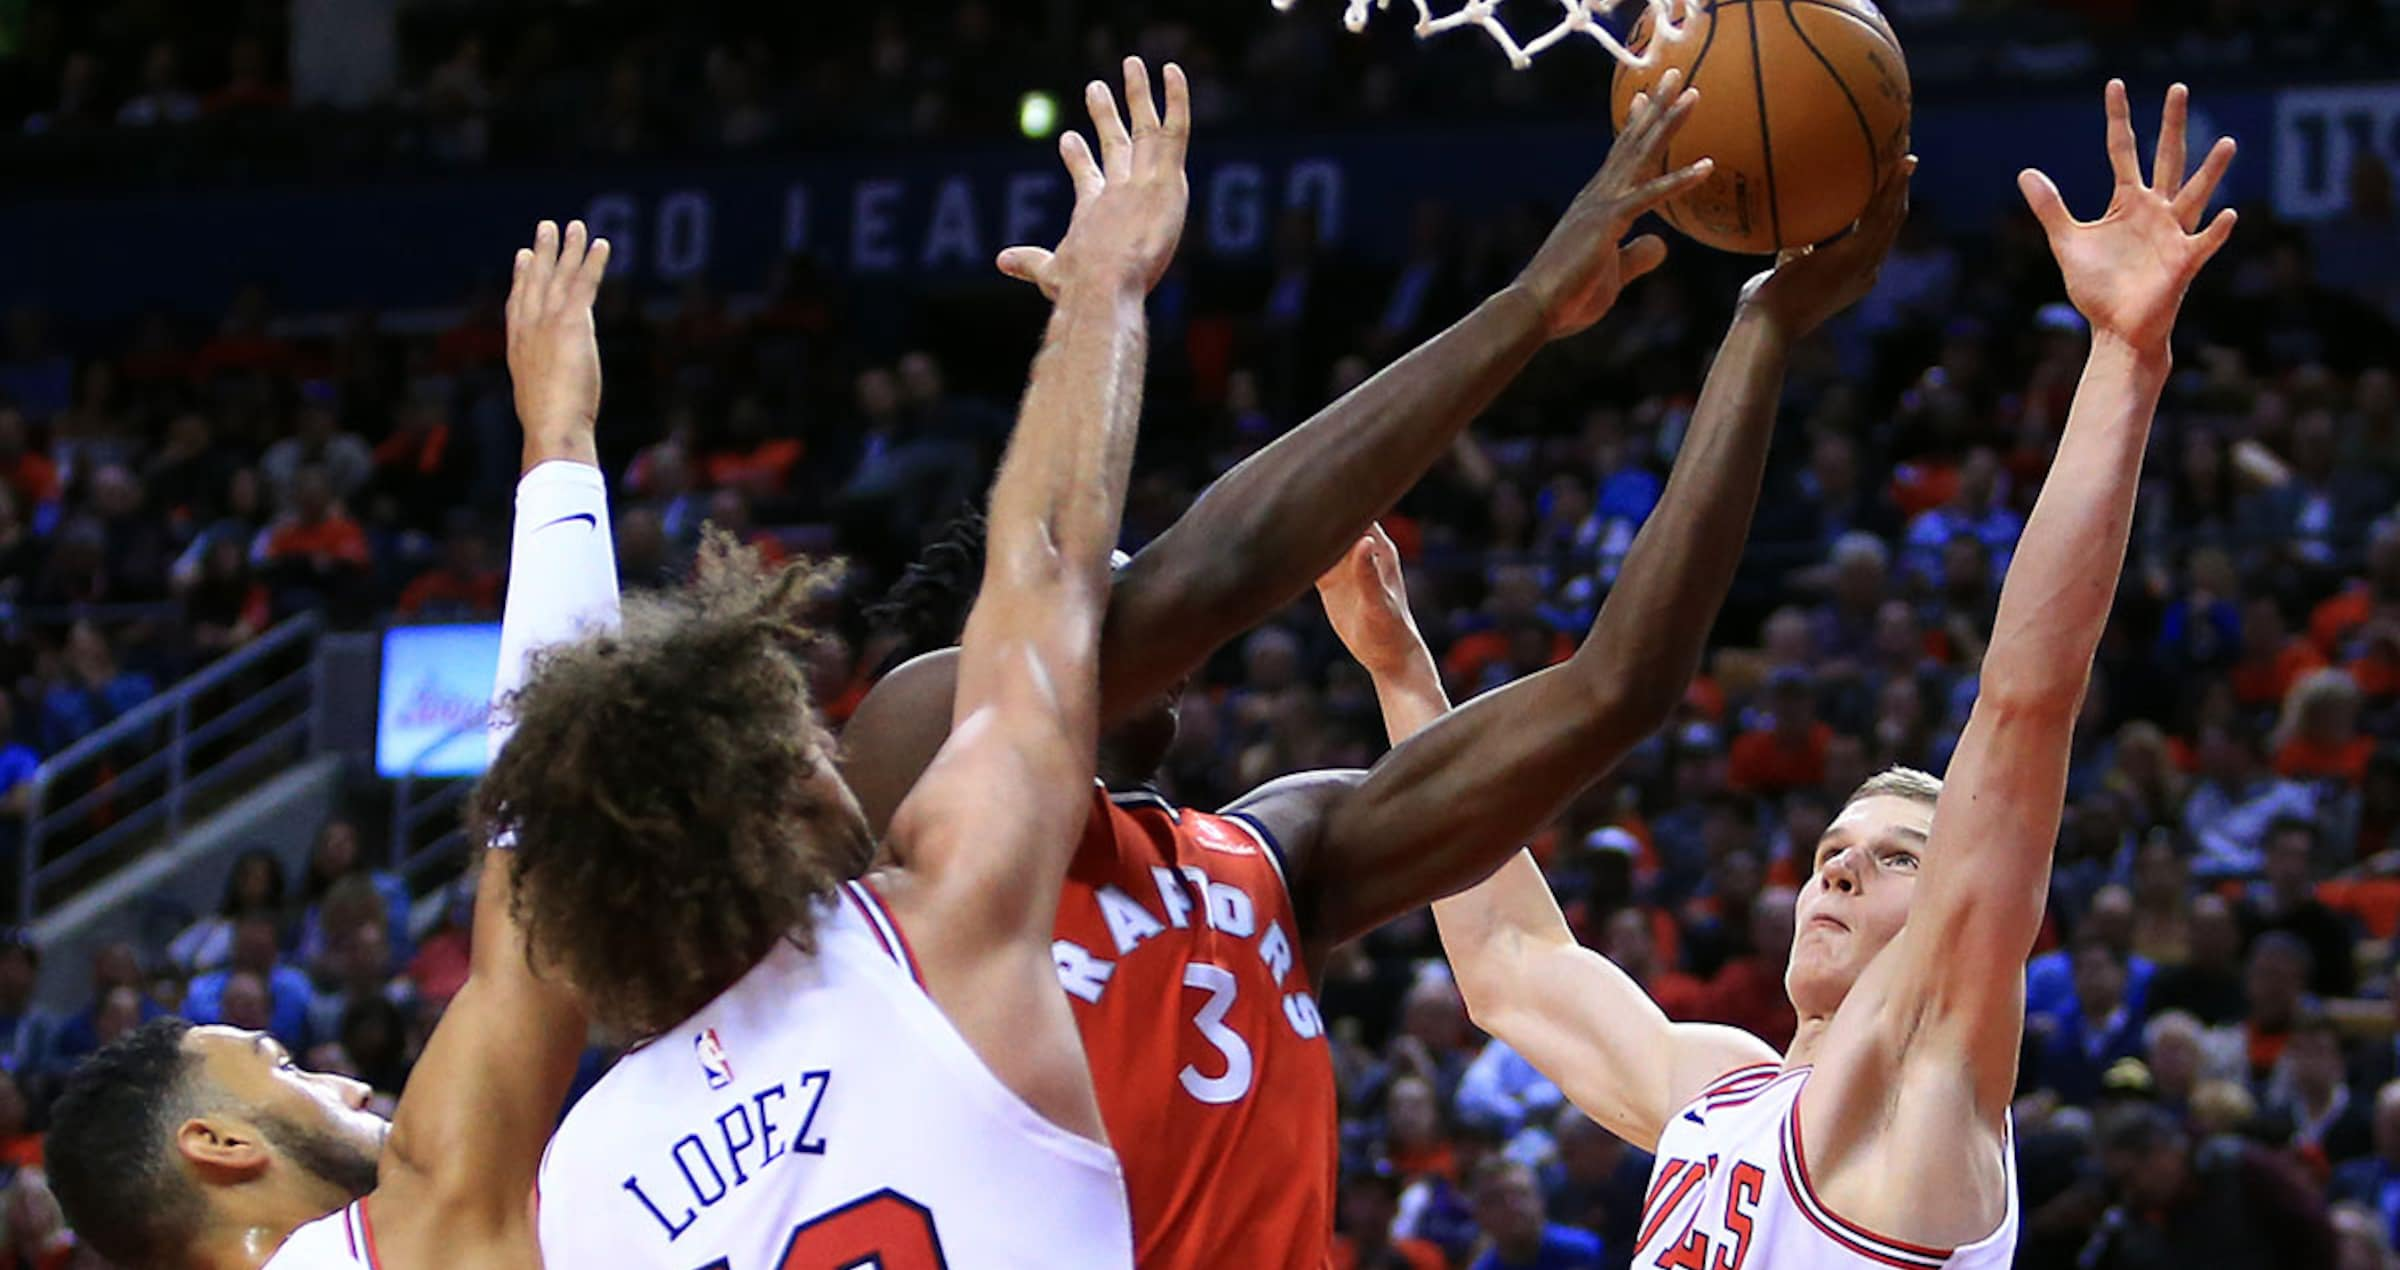 Lauri Markkanen #24 of the Chicago Bulls defends a shot by OG Anunoby #3 of the Toronto Raptors during the second half of an NBA game at Air Canada Centre on October 19, 2017 in Toronto, Canada.